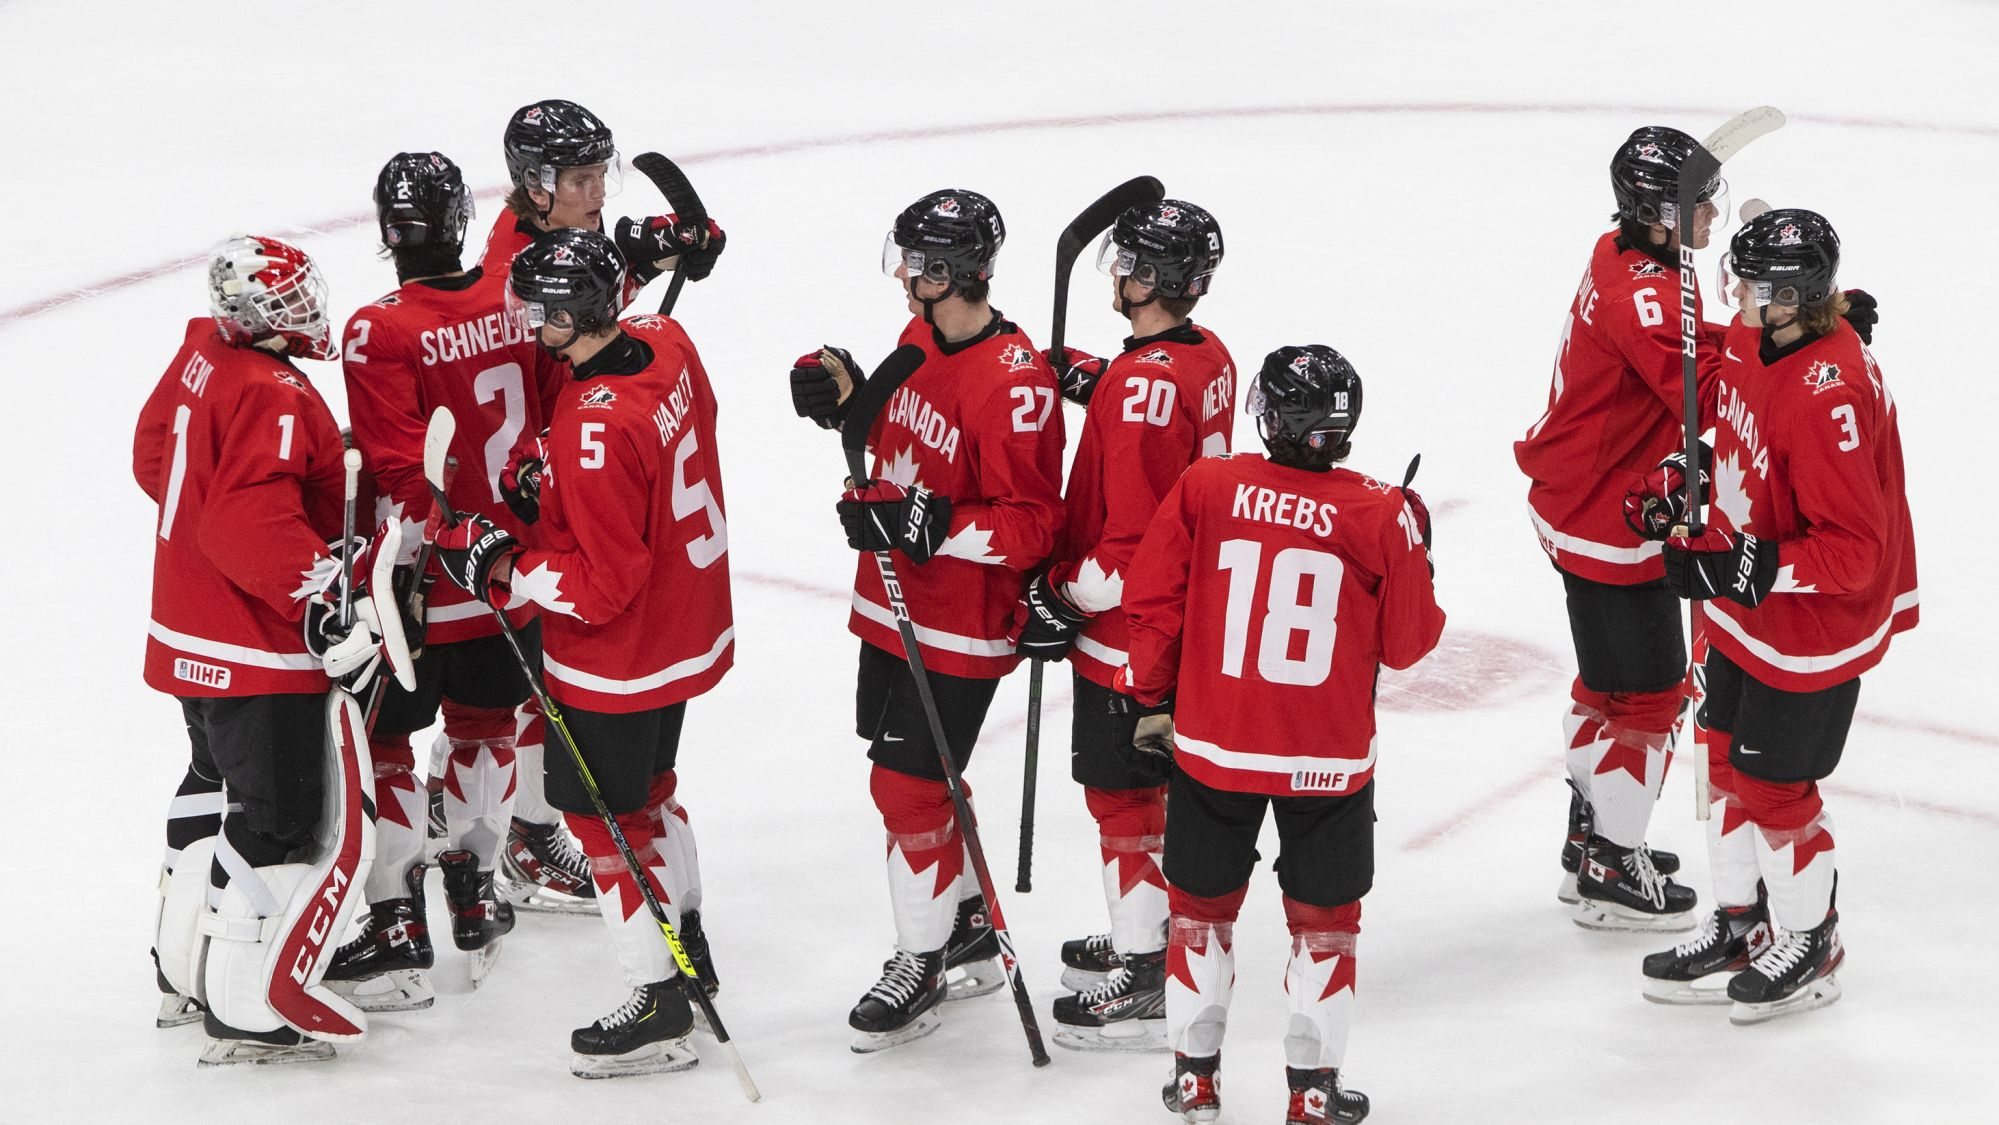 Canada submits best performance with dominant win over Finland – Yahoo Canada Sports